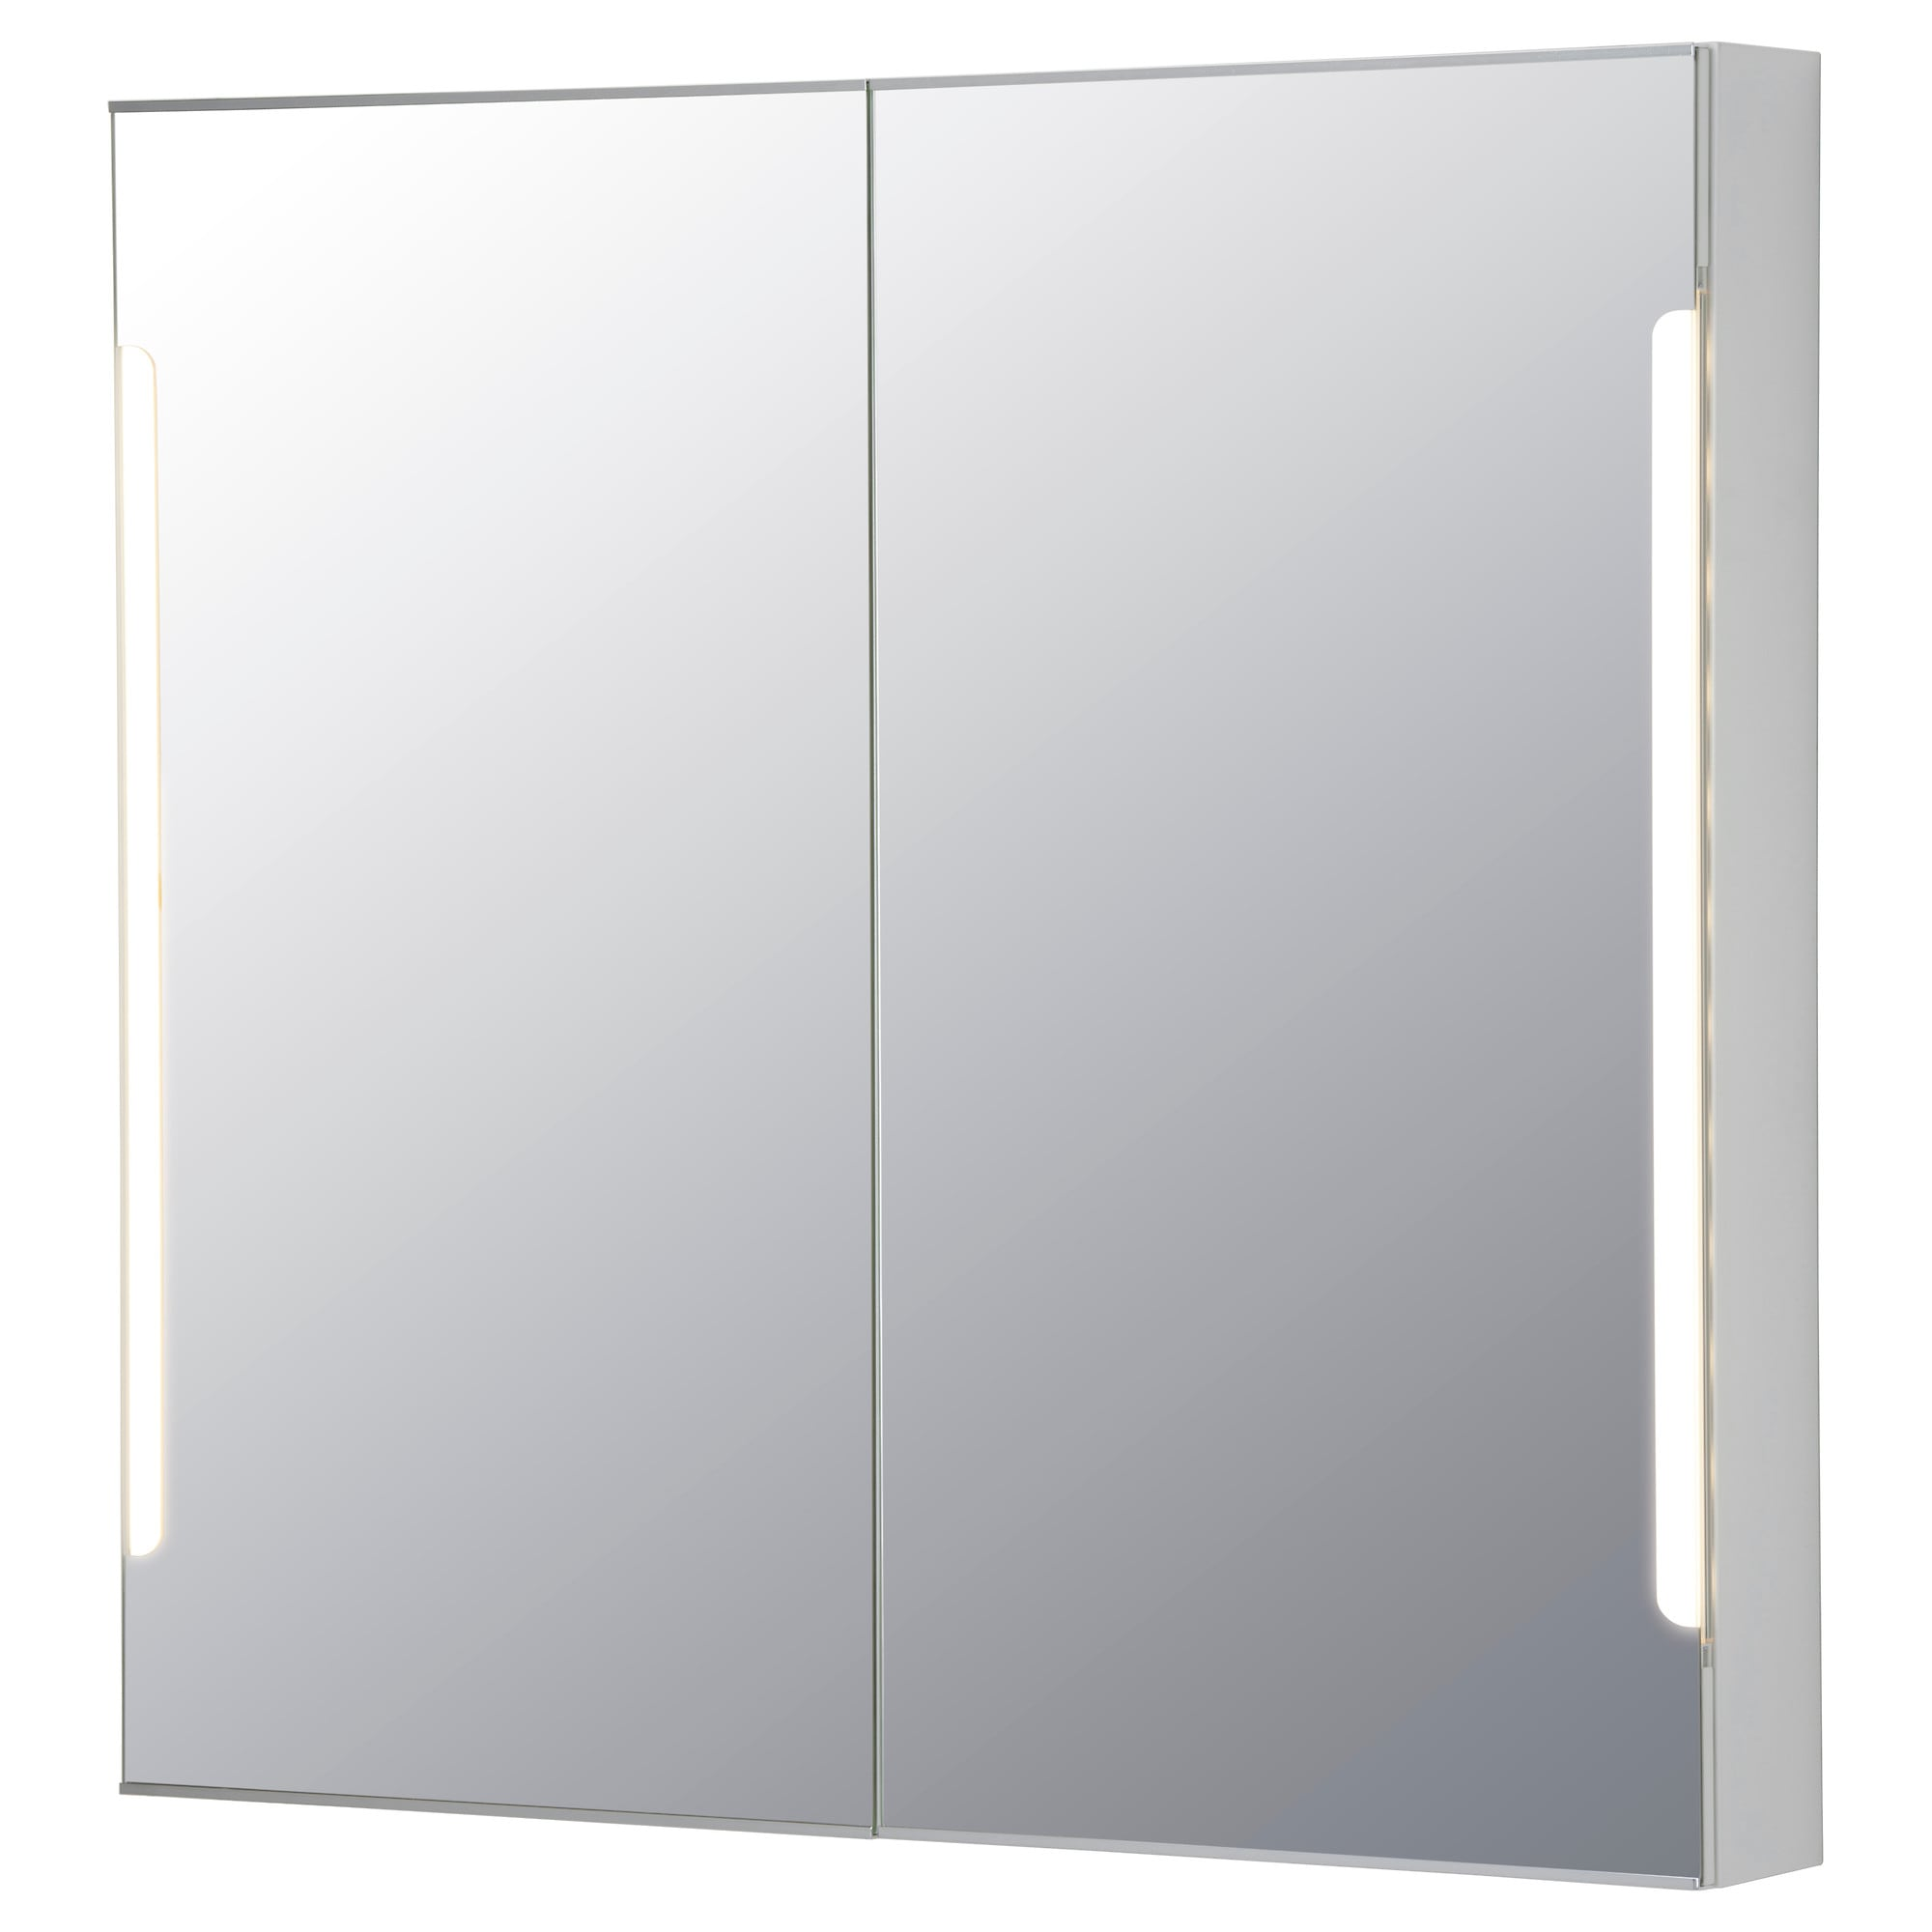 Ikea Bathroom Cabinet Doors bedroom design New in Home Decorating Ideas